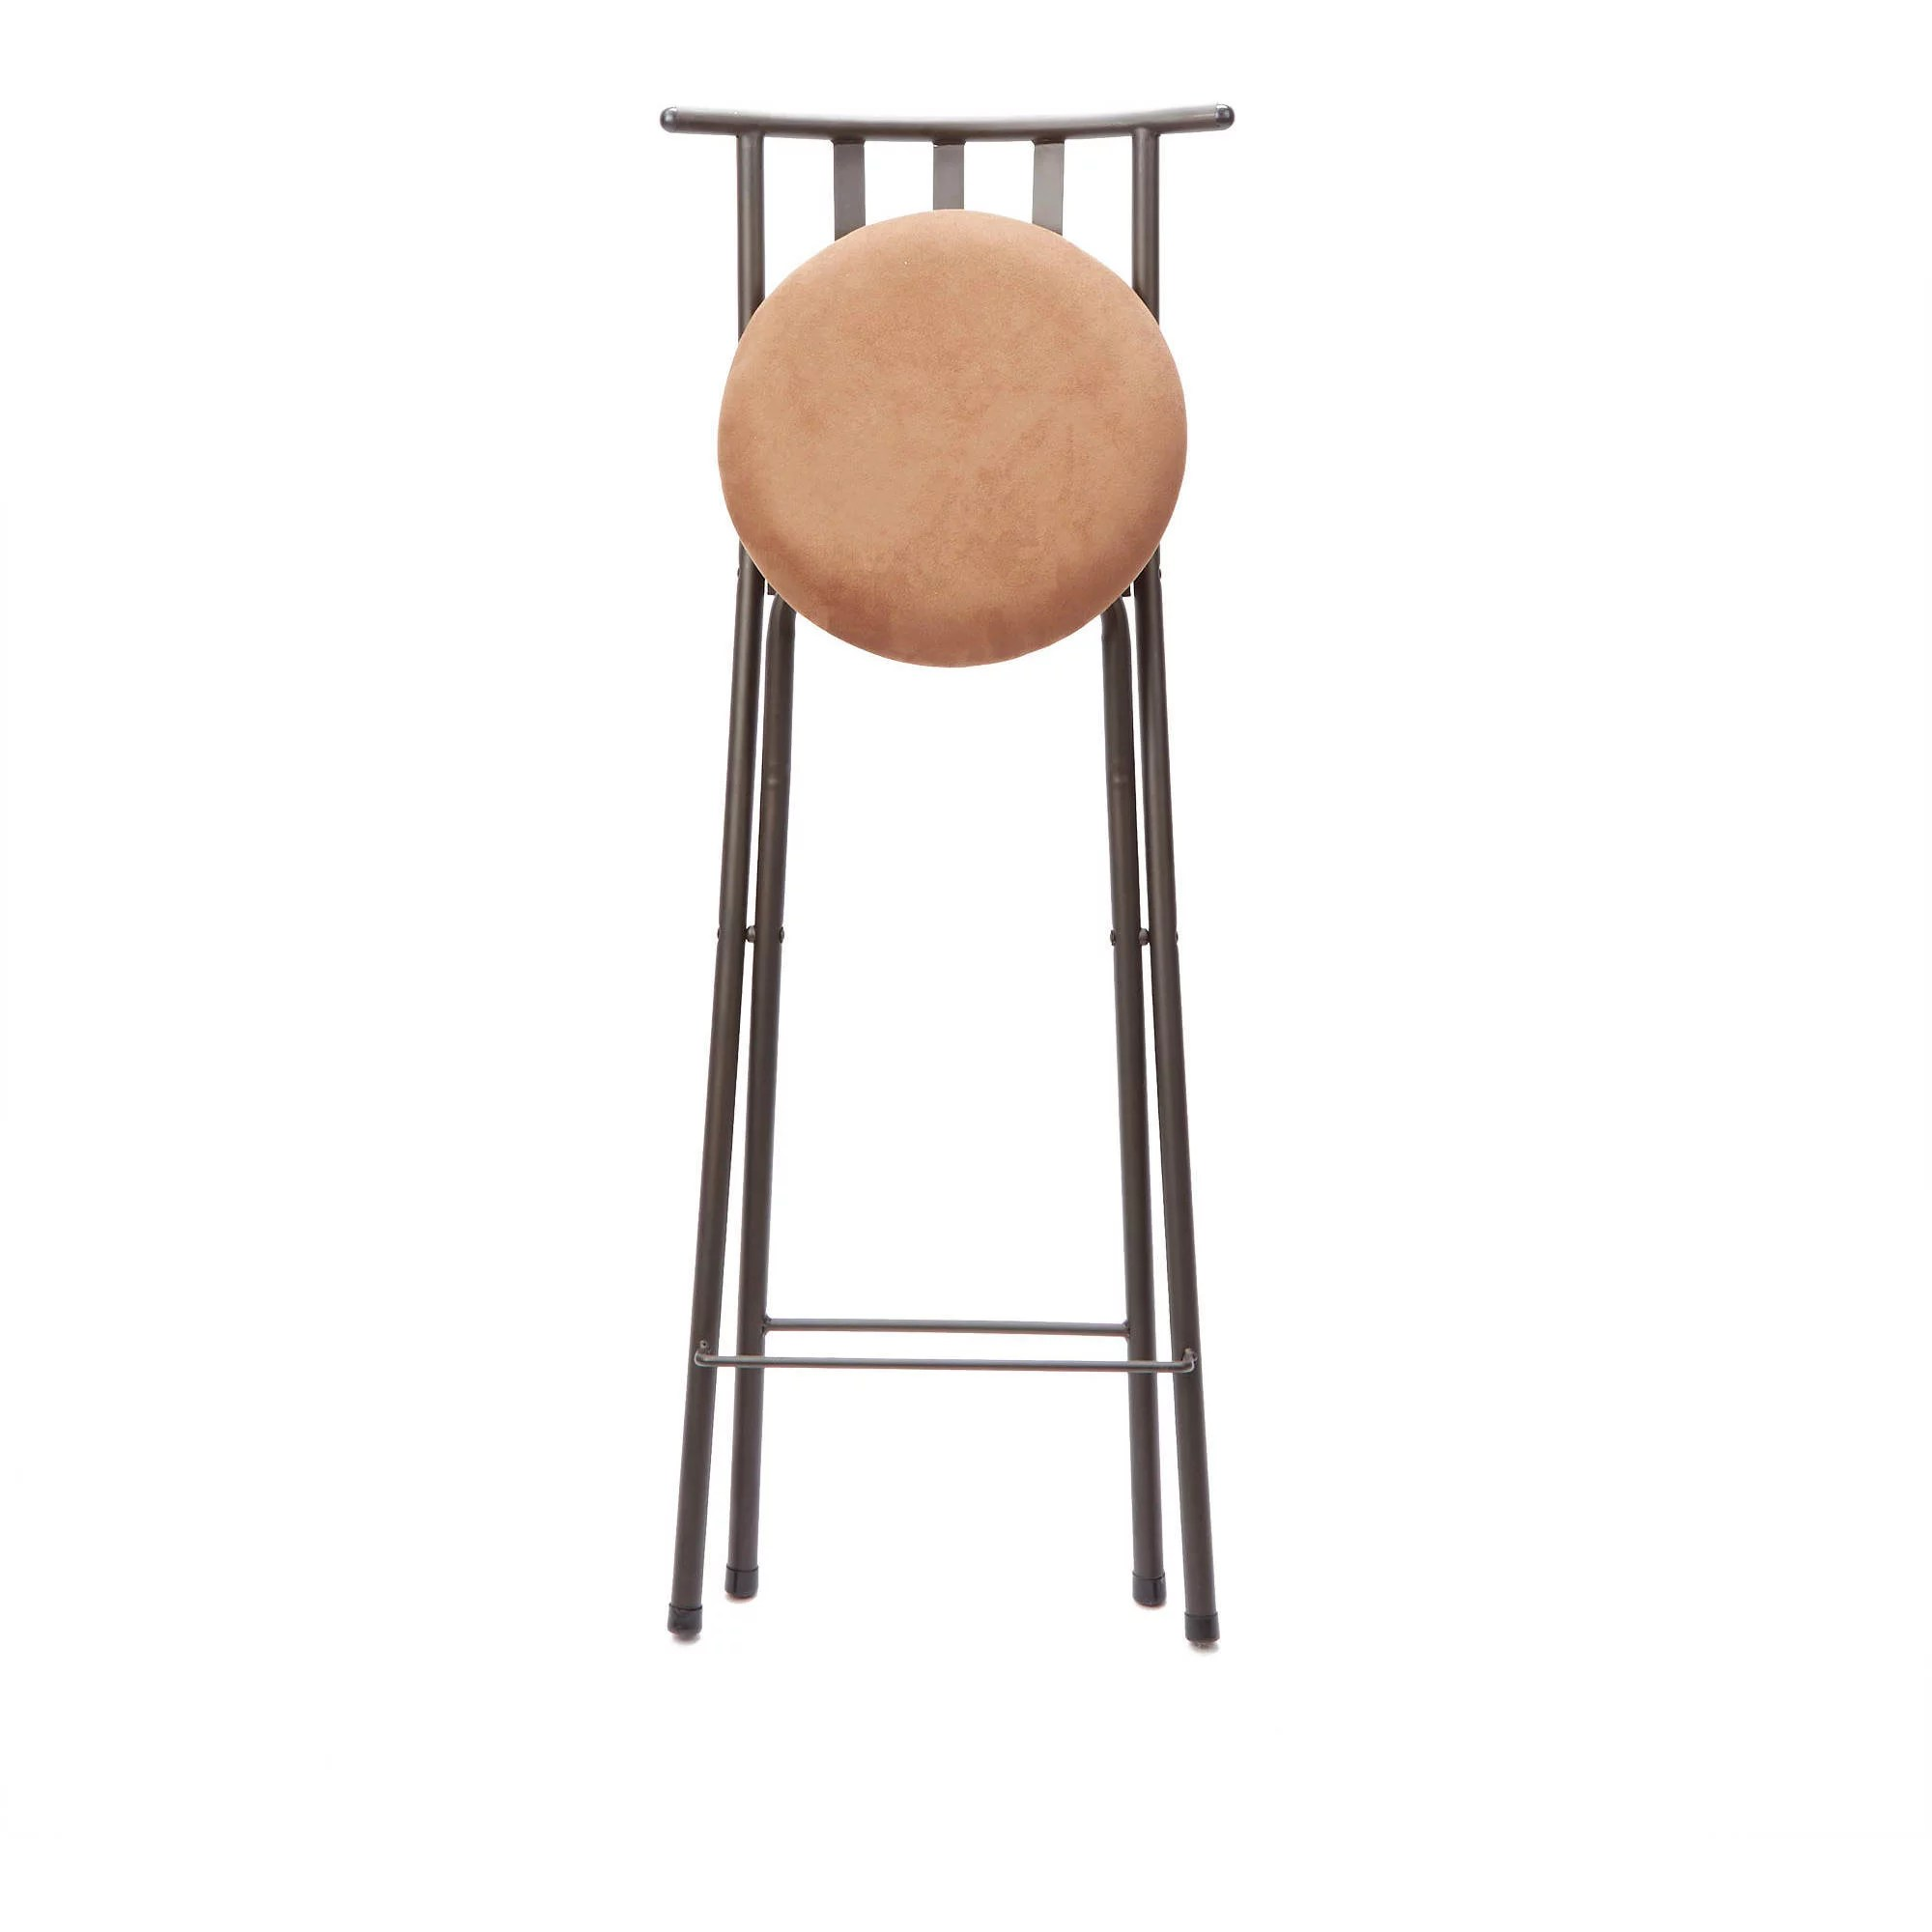 folding bar stool chairs swivel chair base kit new adjustable bronze furniture x